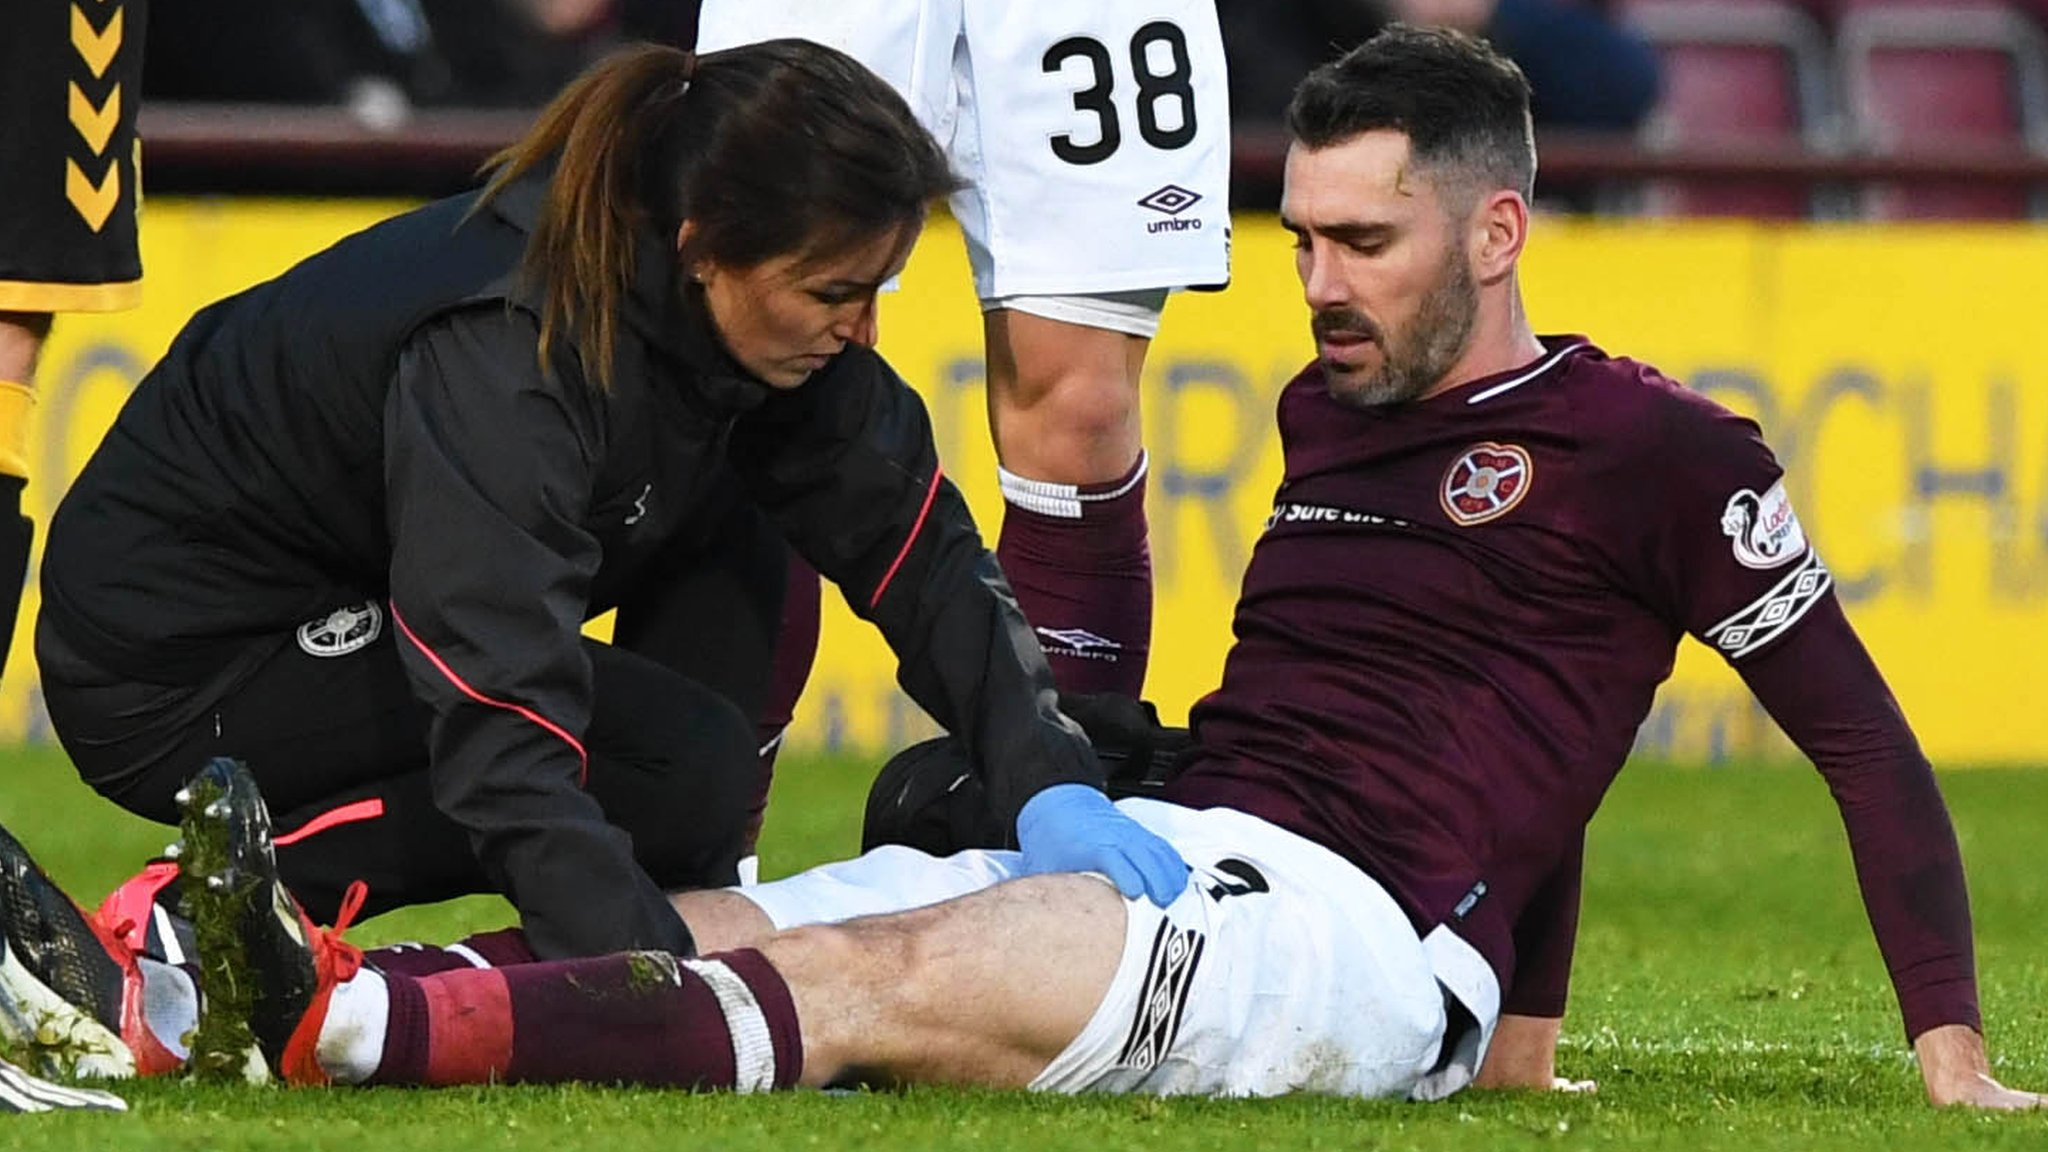 Hearts: Defender Michael Smith sidelined for 'between six and 12 weeks' - Levein